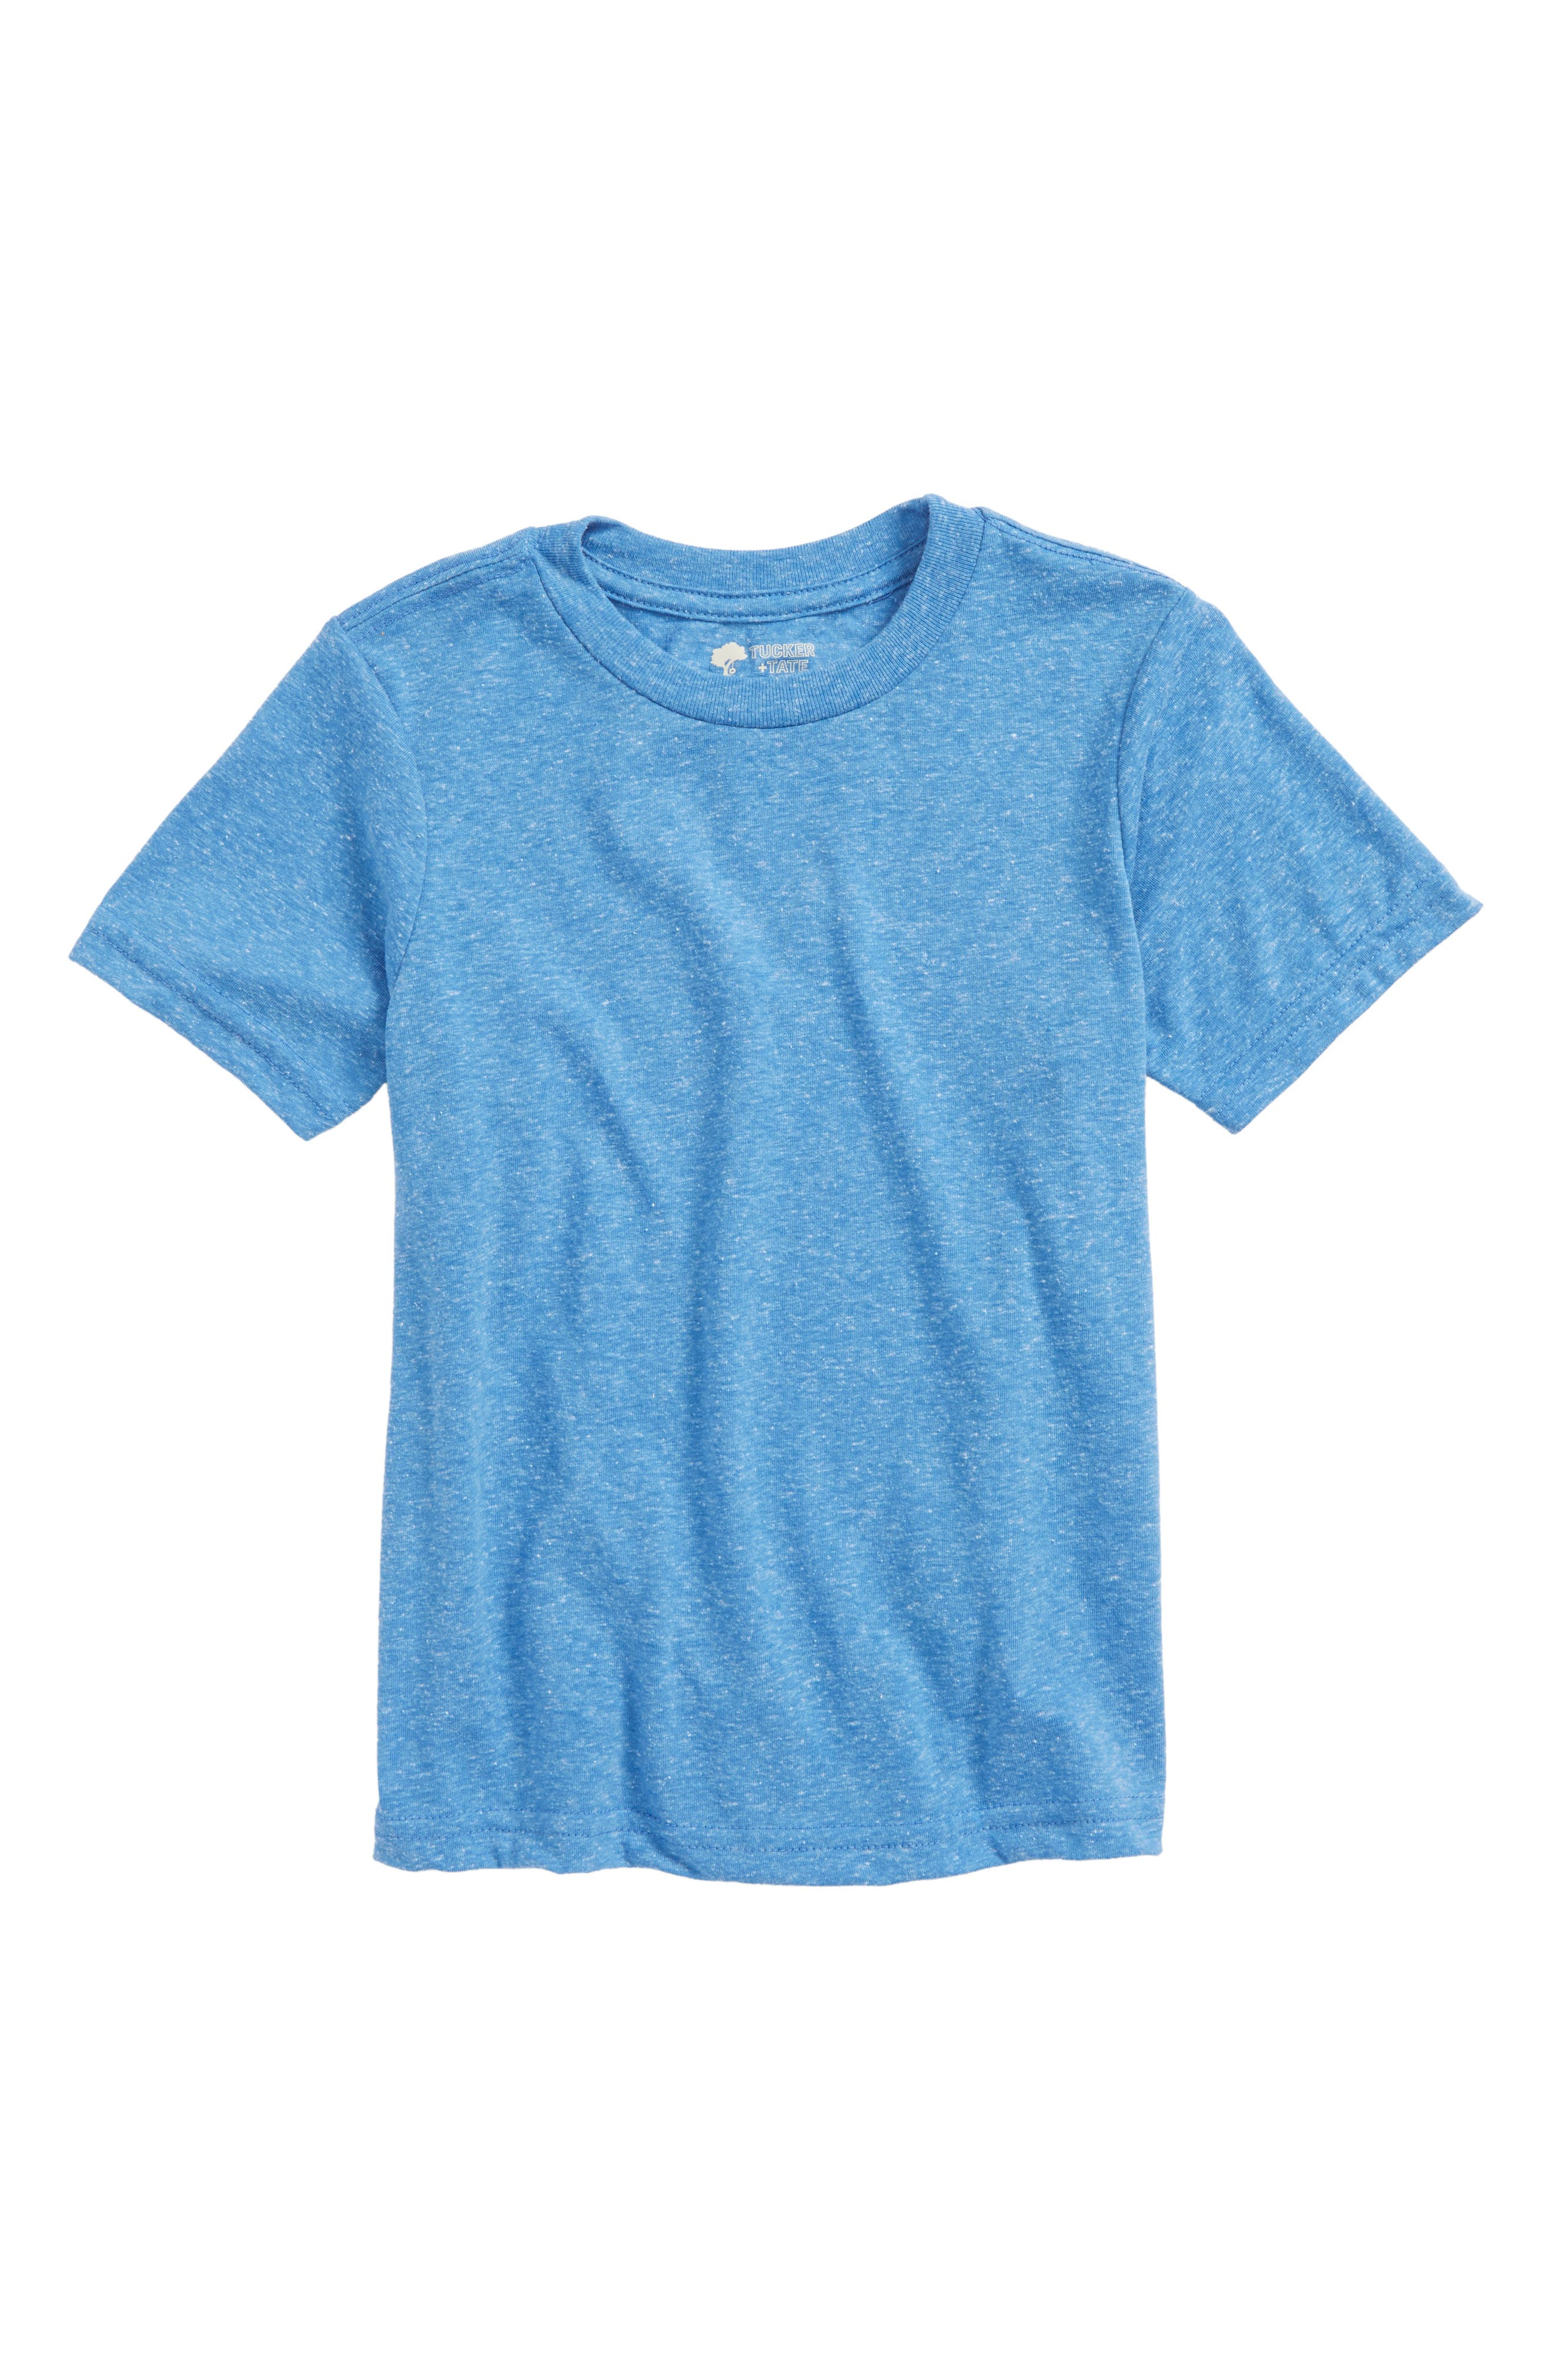 Tucker + Tate Basic T-Shirt (Toddler Boys & Little Boys)